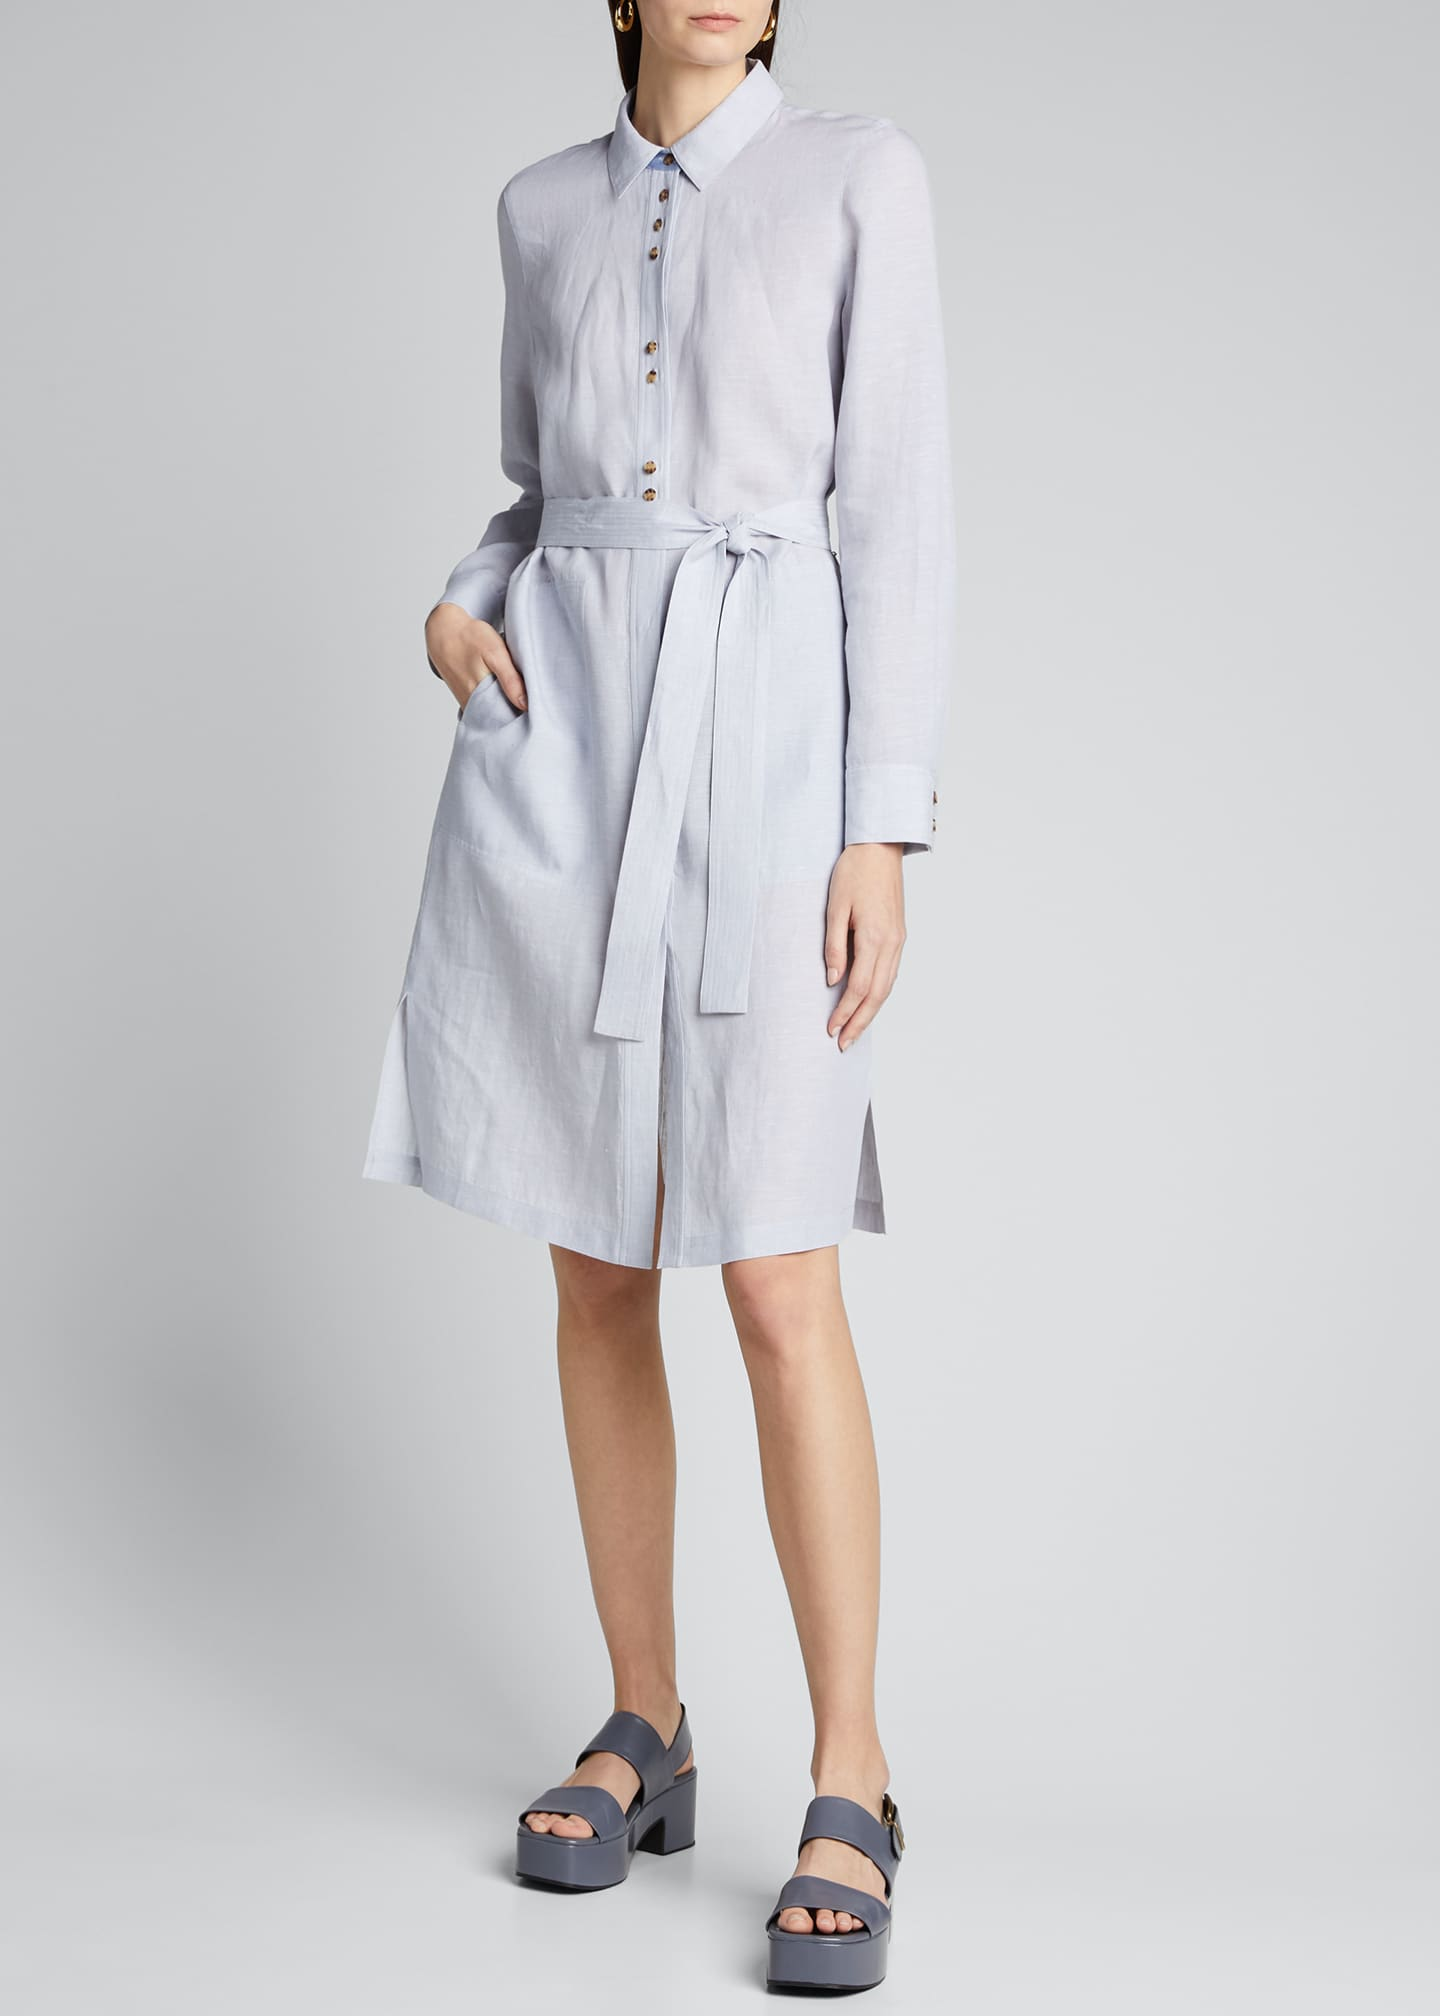 Image 1 of 5: Michlle Illustrious Linen Duster Dress